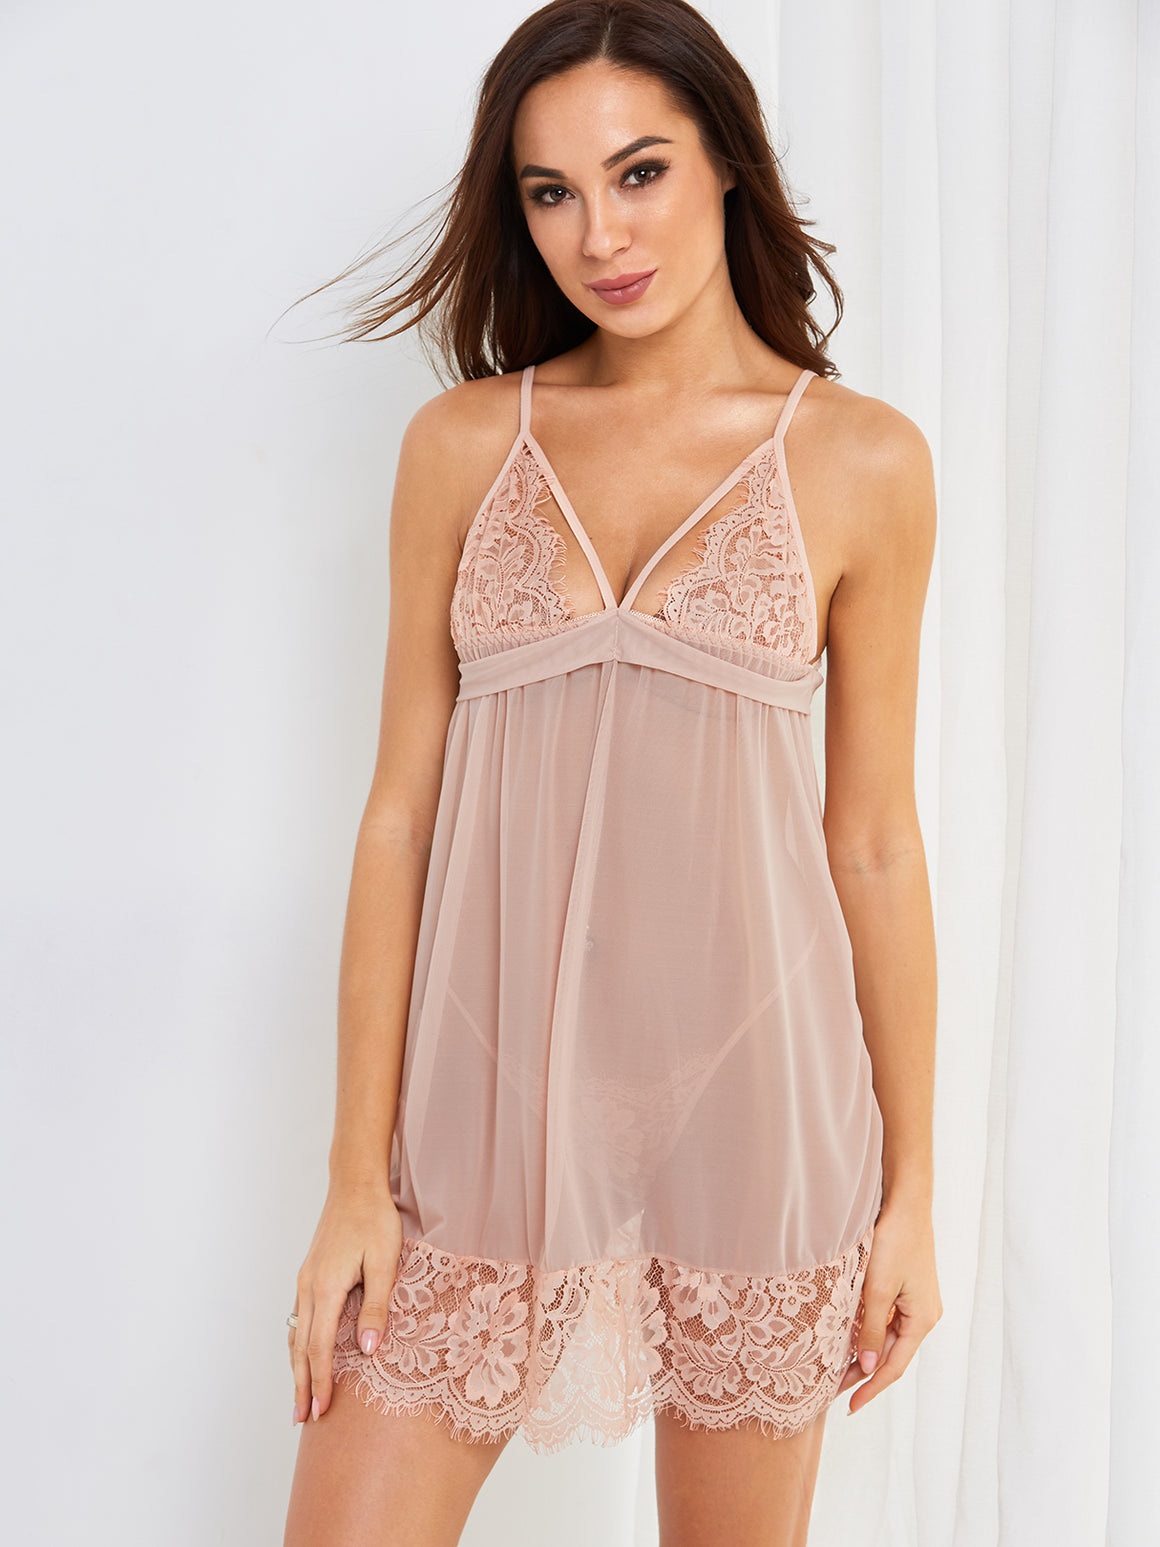 Tie-up Back Mesh Lace Babydoll Pajamas With G-strings